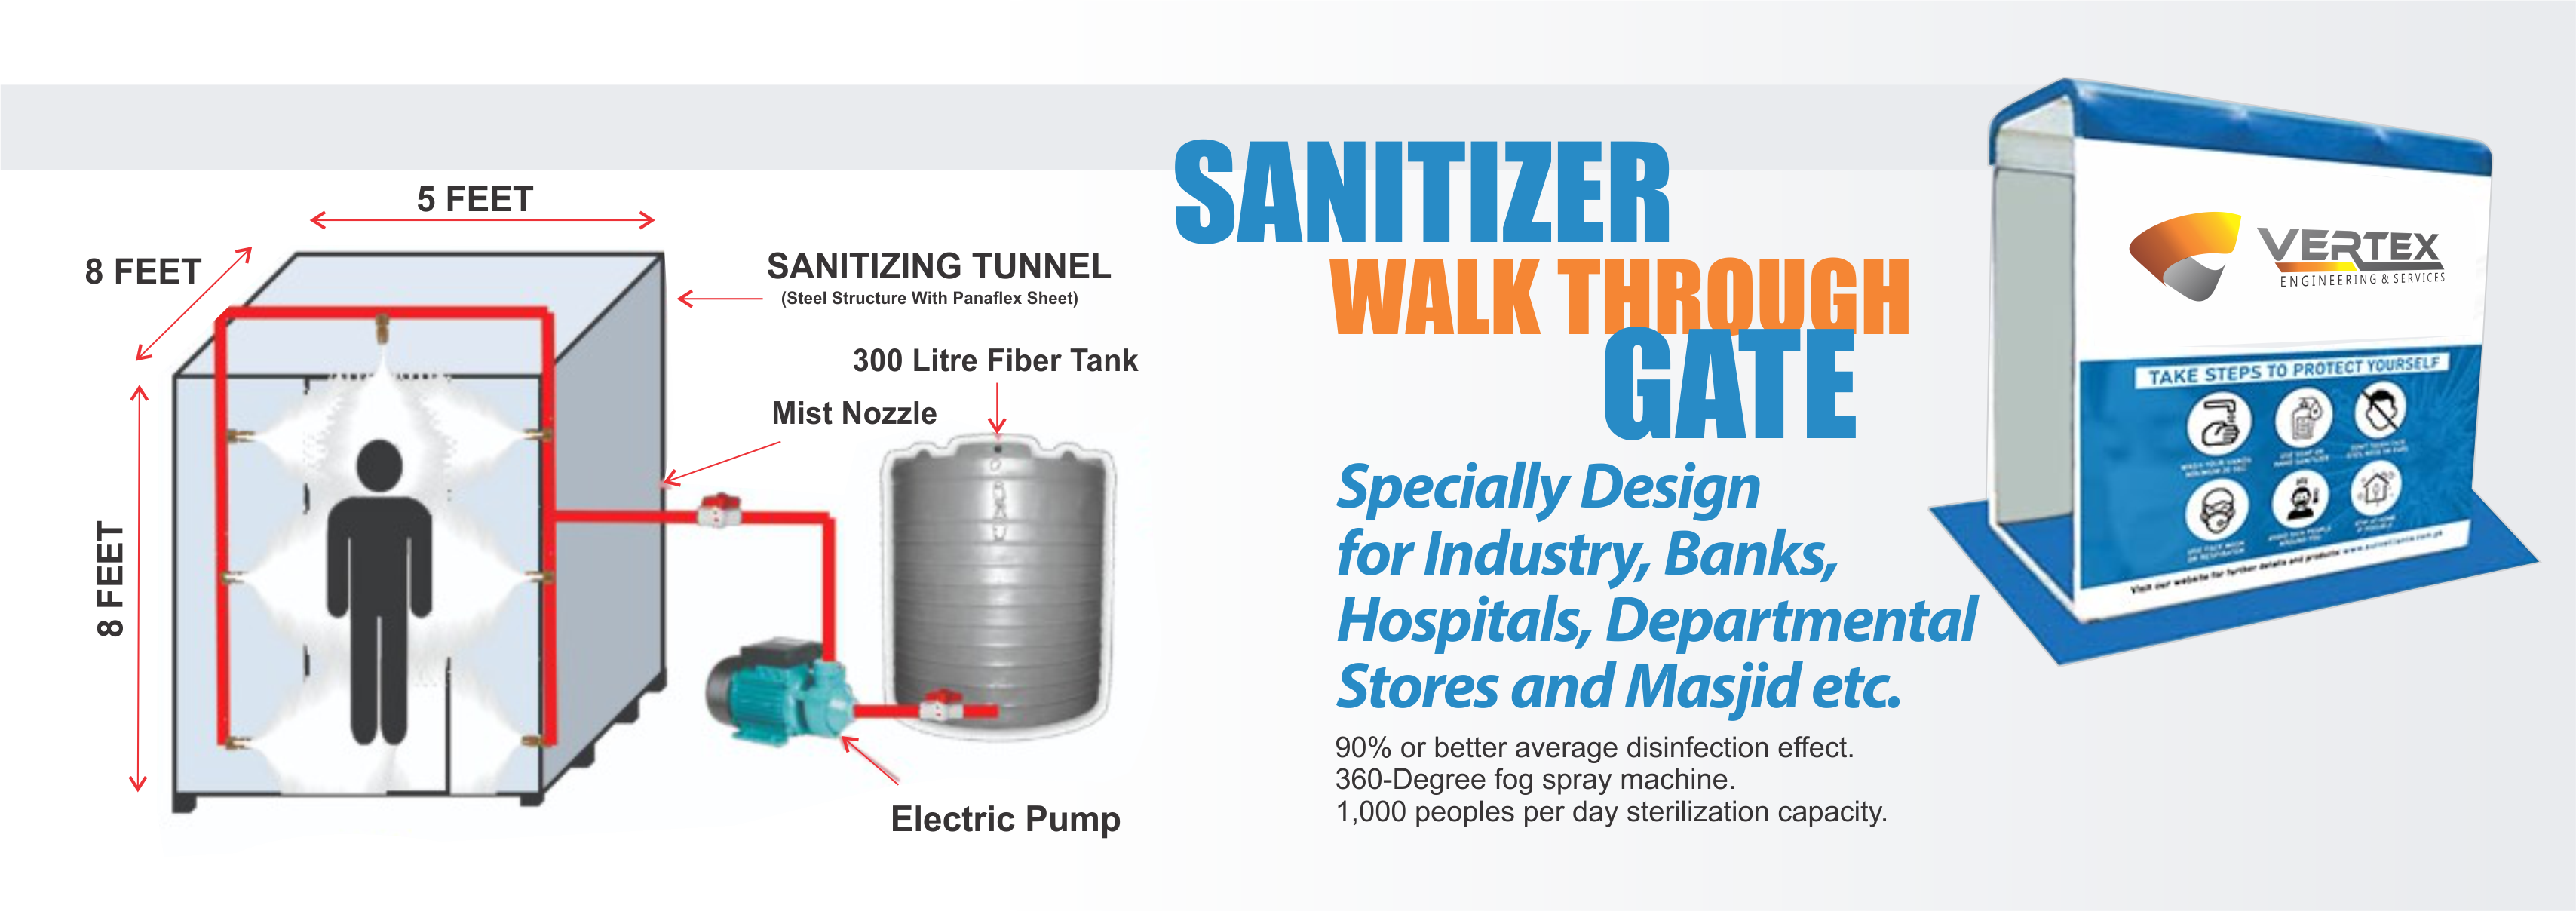 sanitizer walk through gate